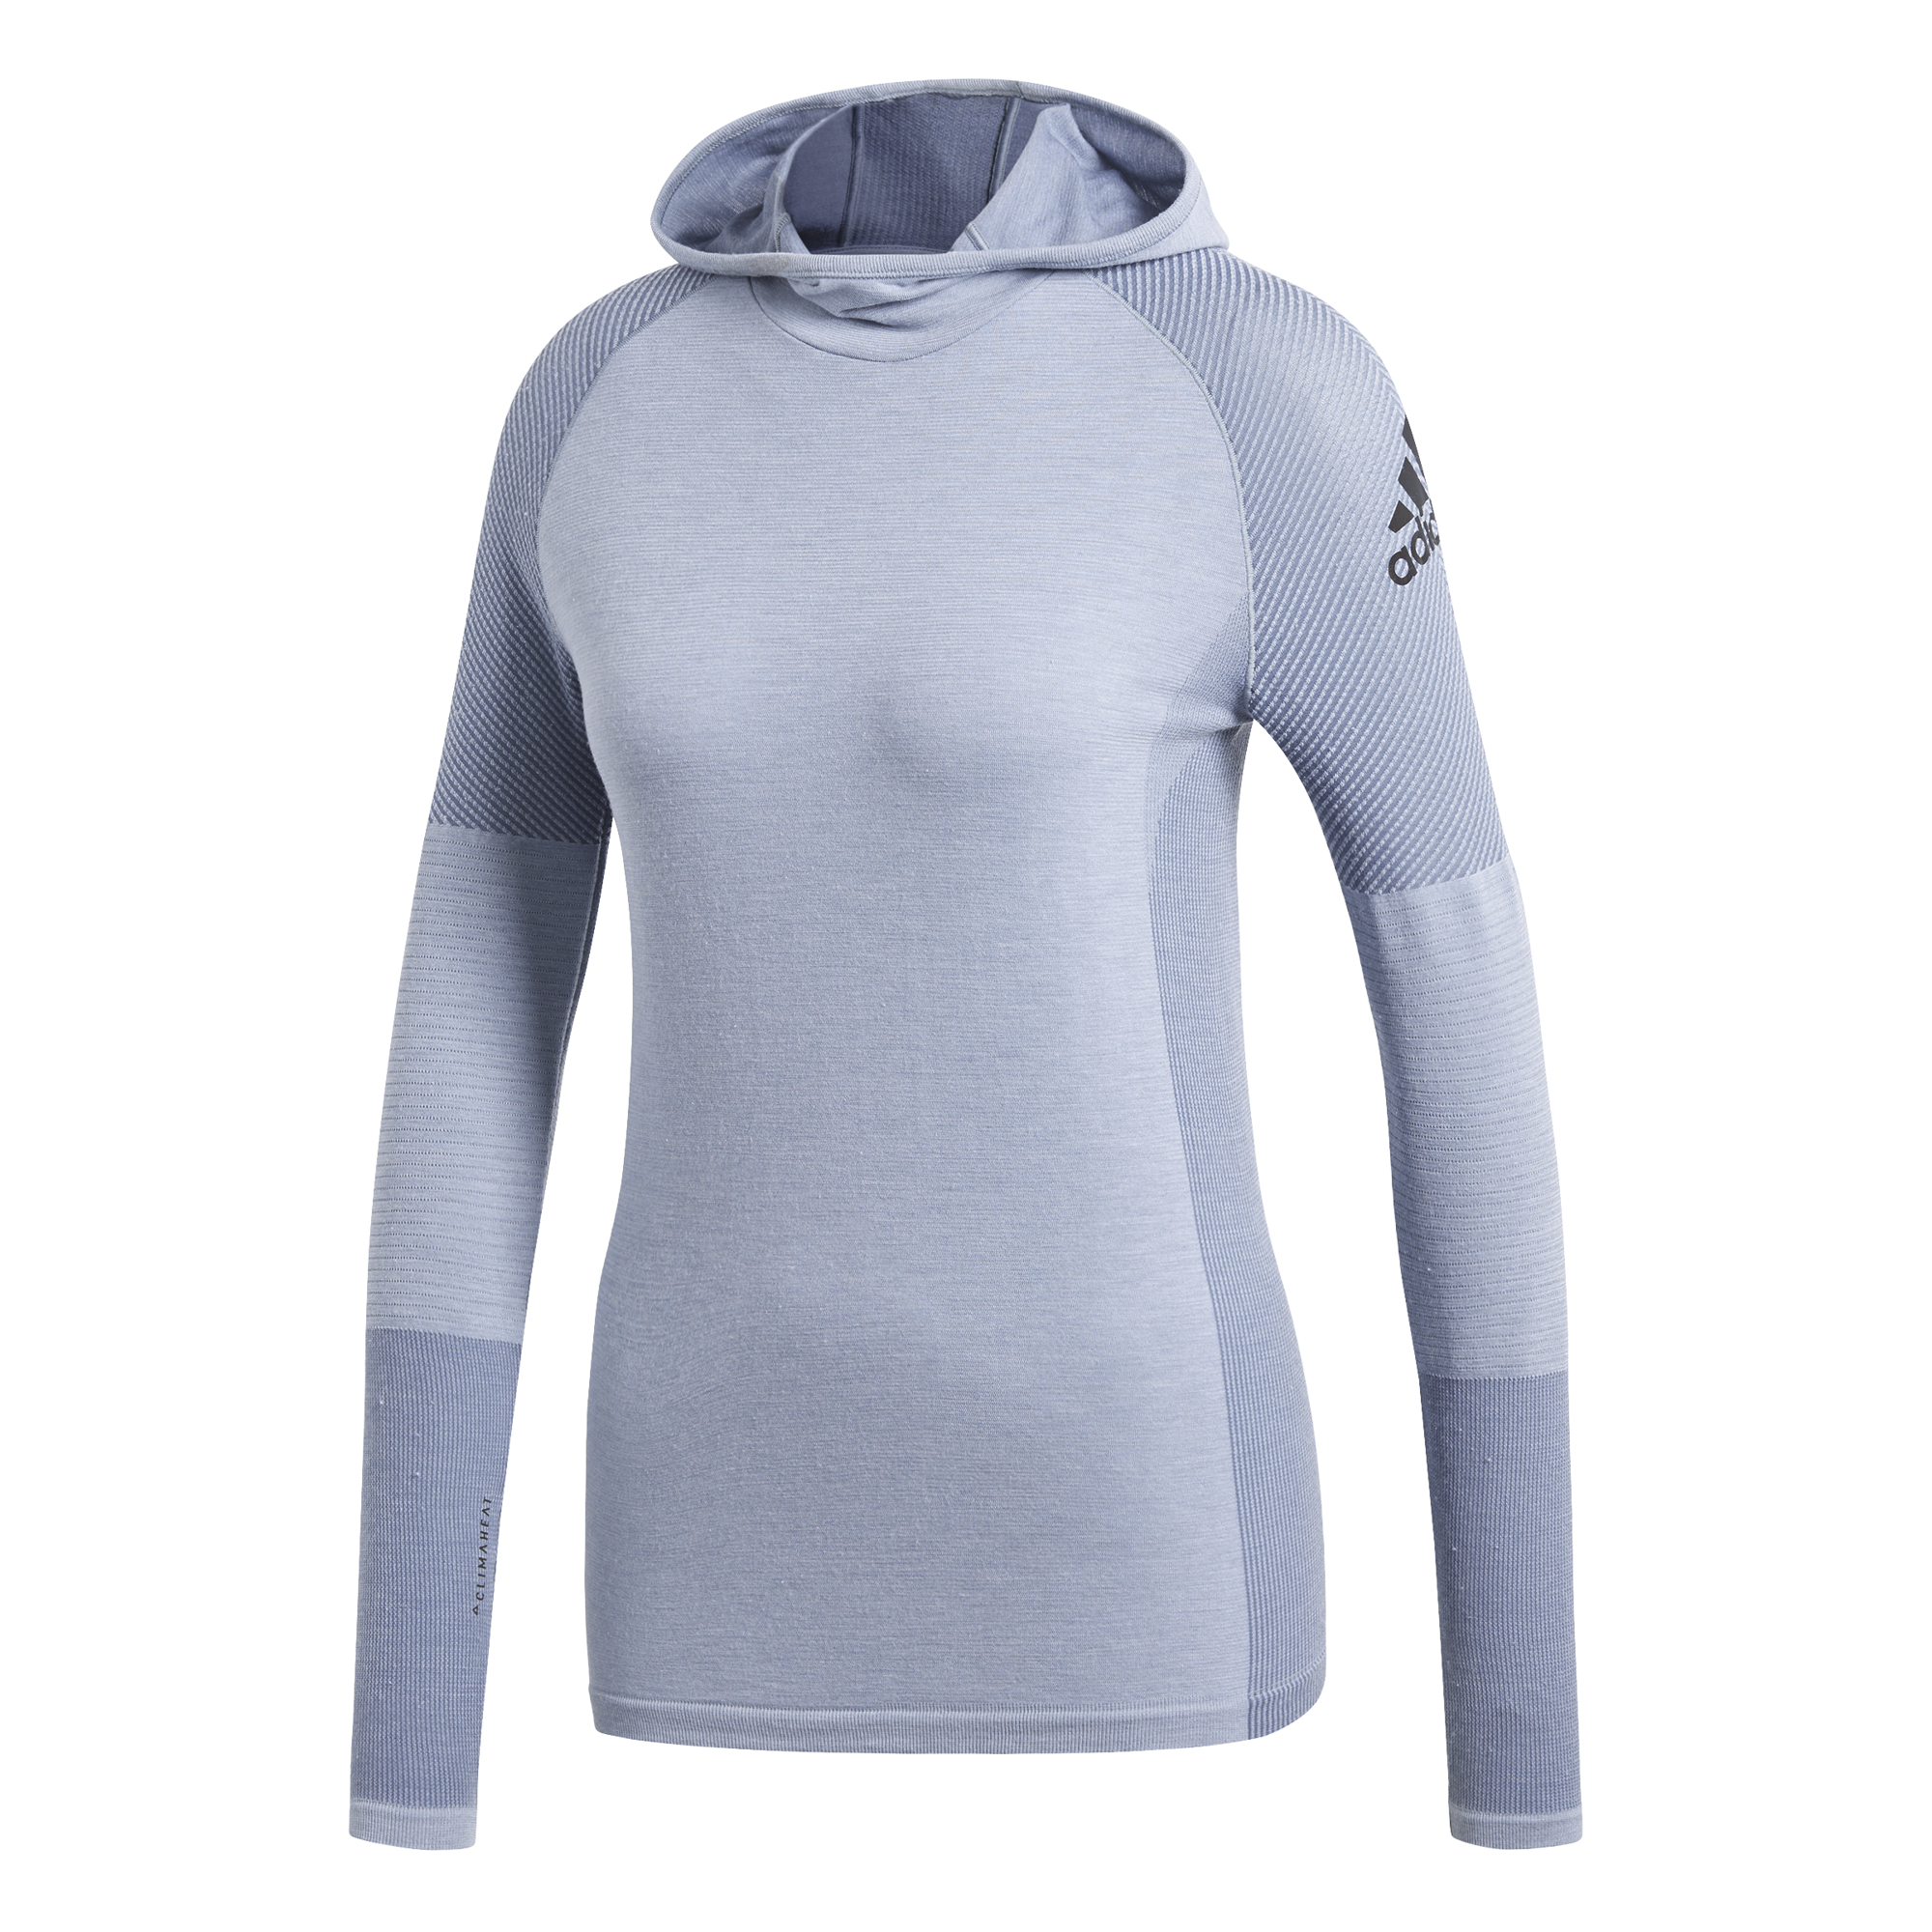 Sweat Femme adidas Climaheat (capuche, manches longues)